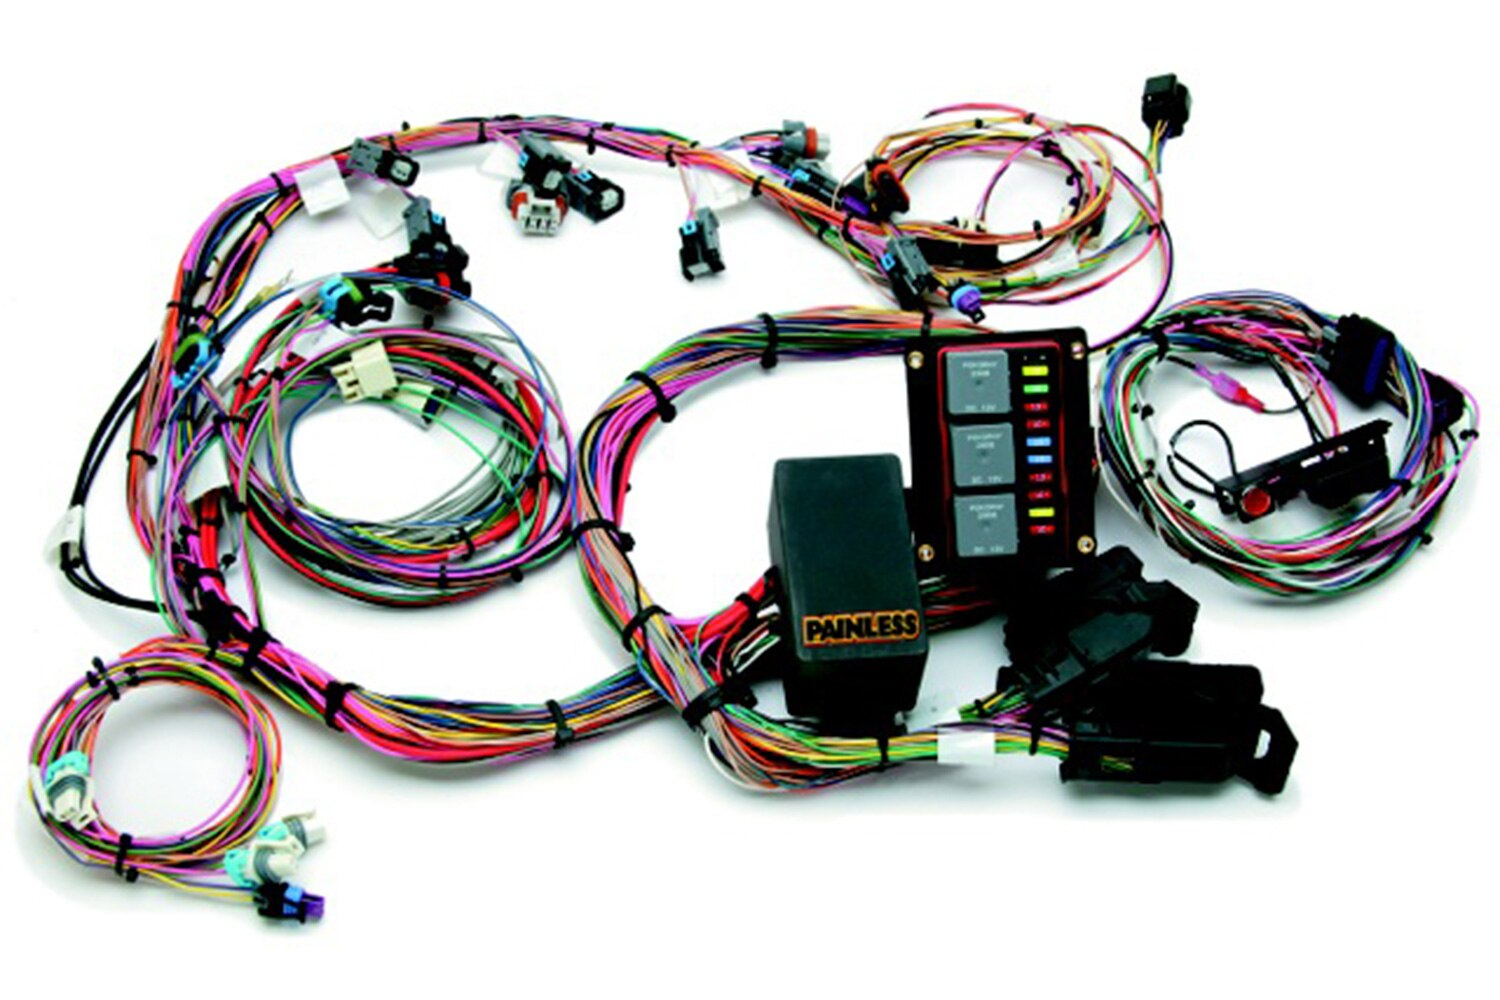 lowrider-new-products-march-2014-painless-performance-LS-harness-promo